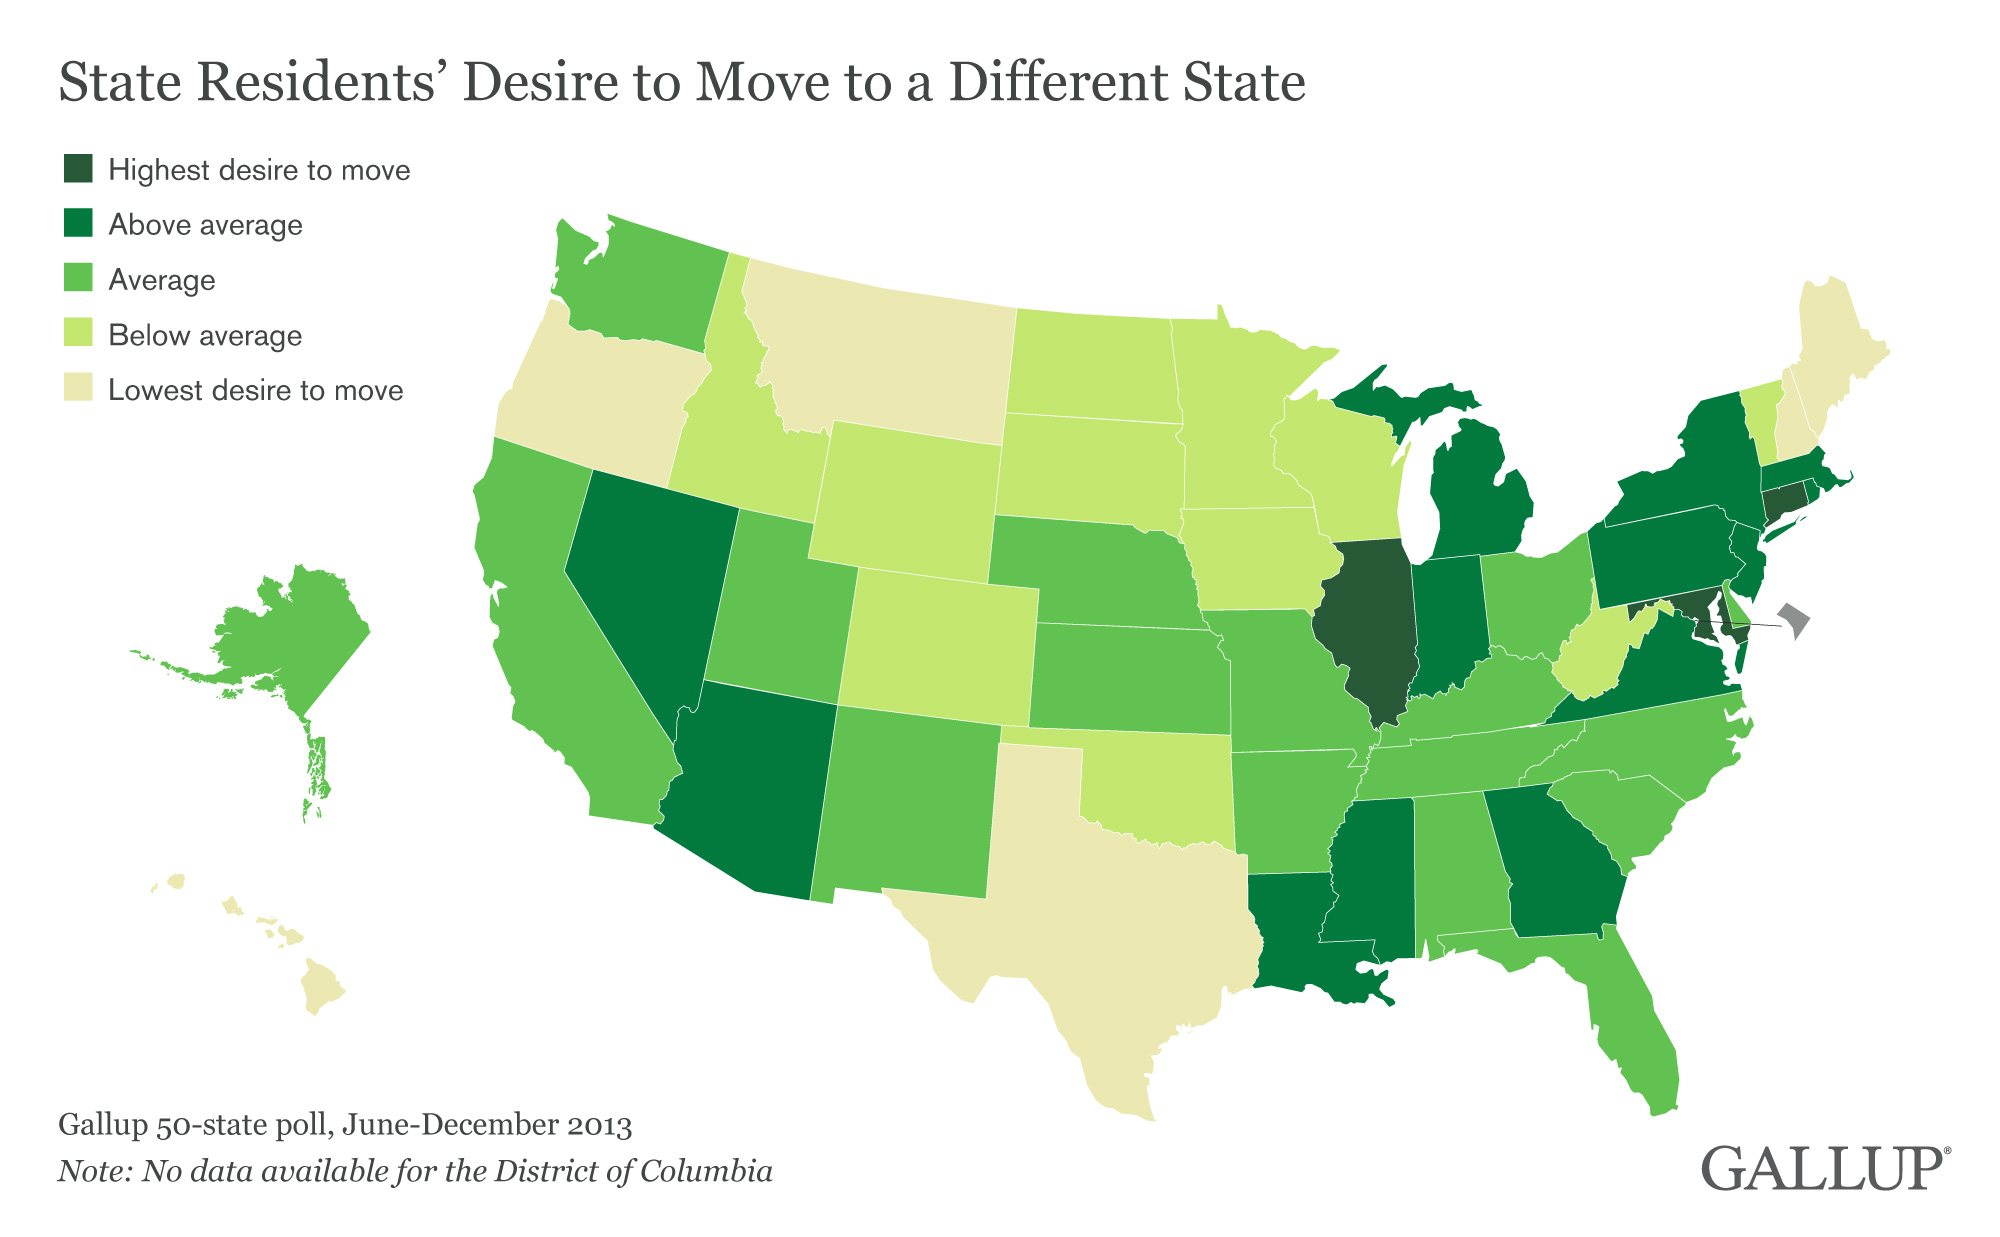 Half Of People Living In Illinois And Connecticut Want To